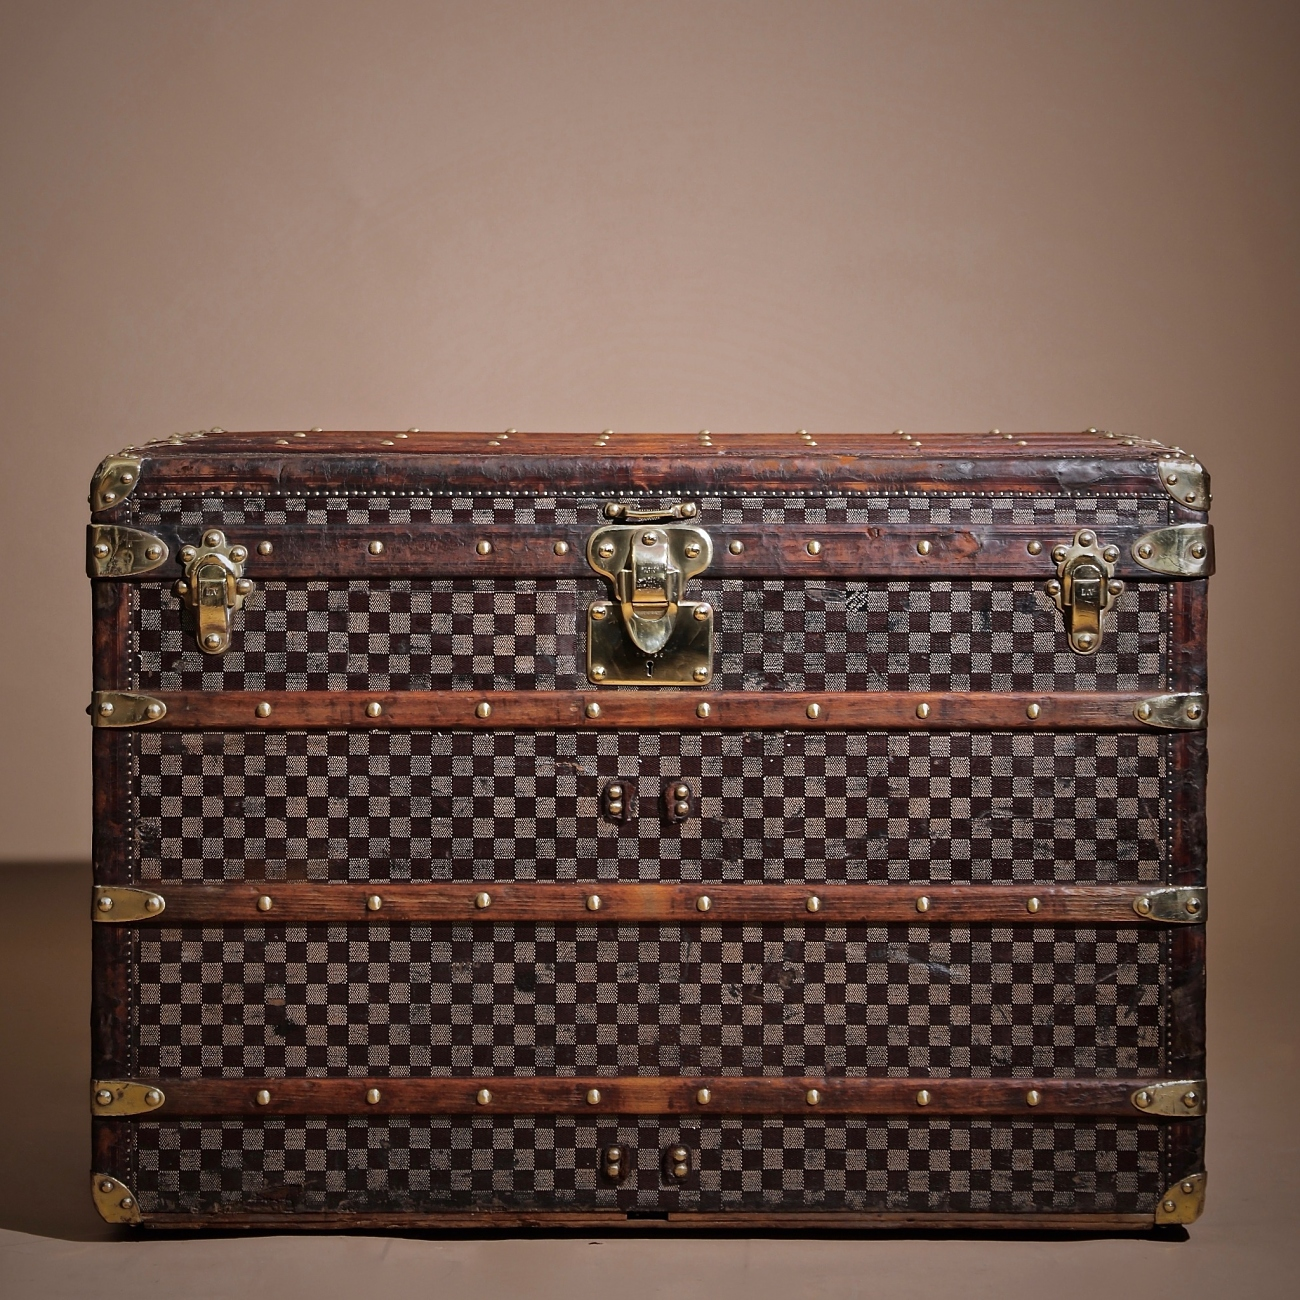 the-well-traveled-trunk-louis-vuitton-thumbnail-product-5715